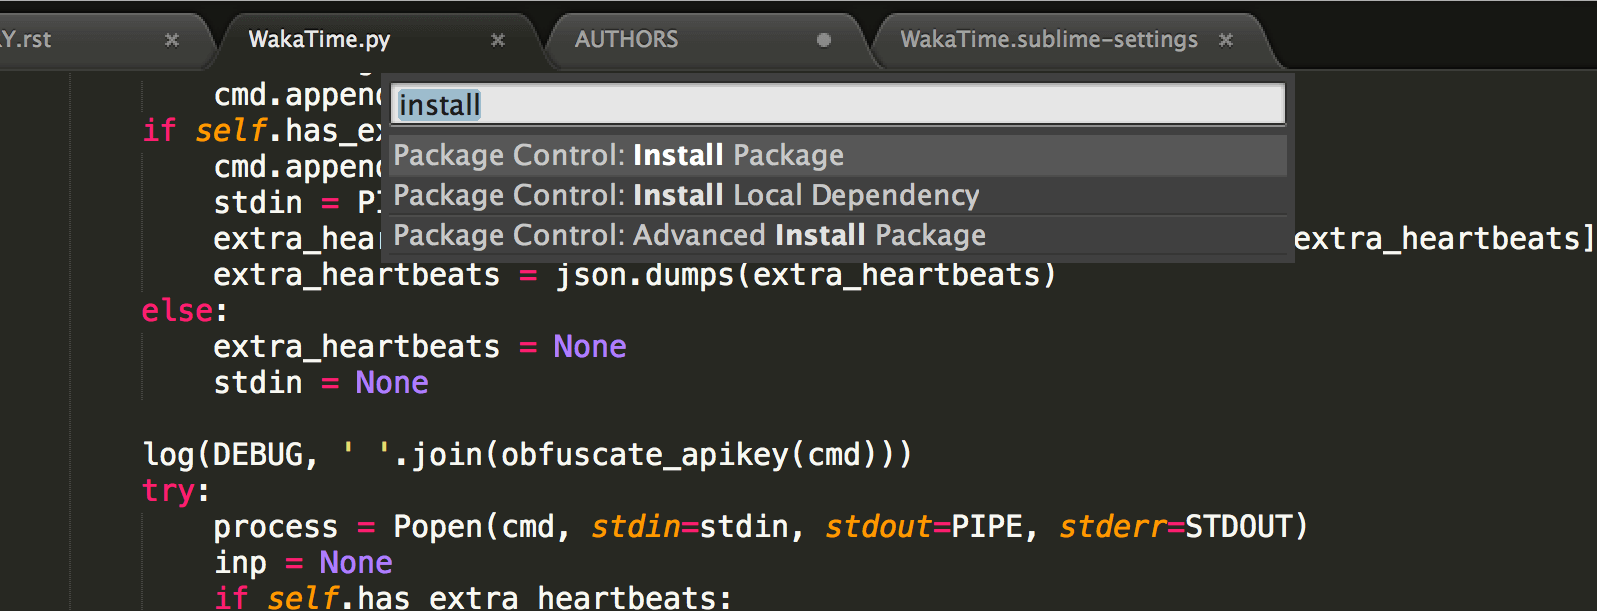 Sublime Text · WakaTime - Open source plugin for automatic time tracking